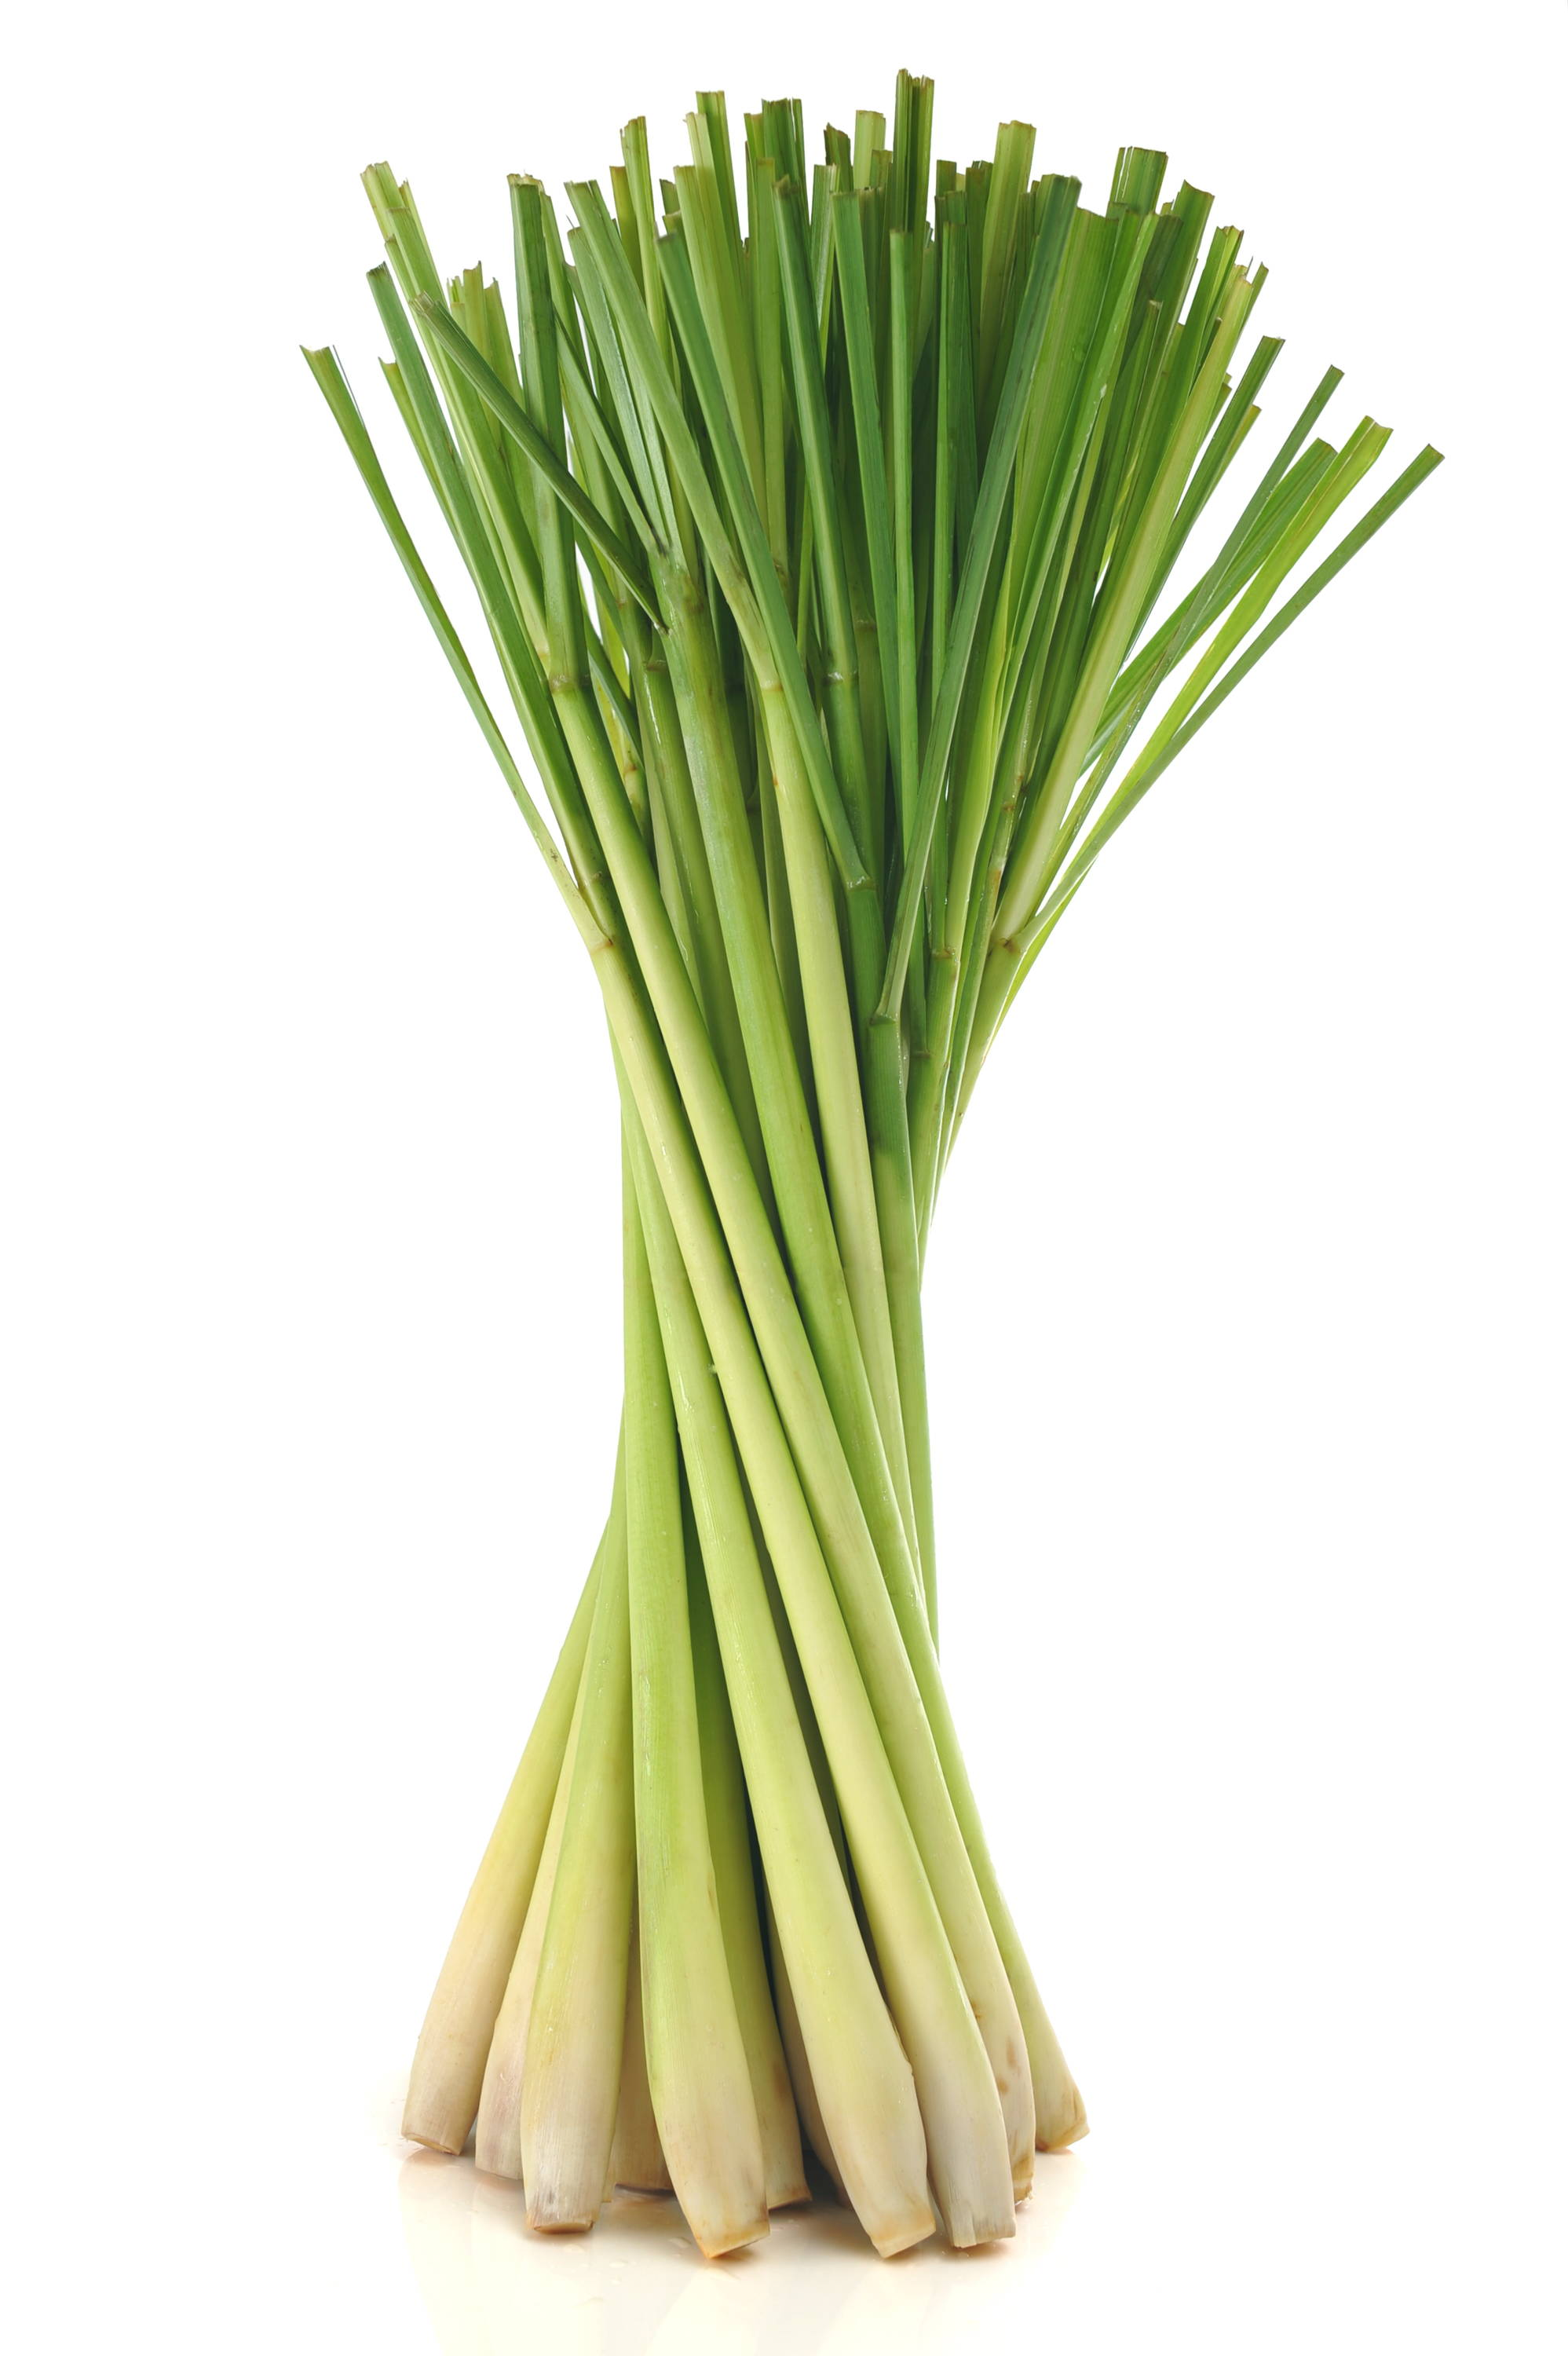 Lemongrass, essential oils blog, satopradhan vison